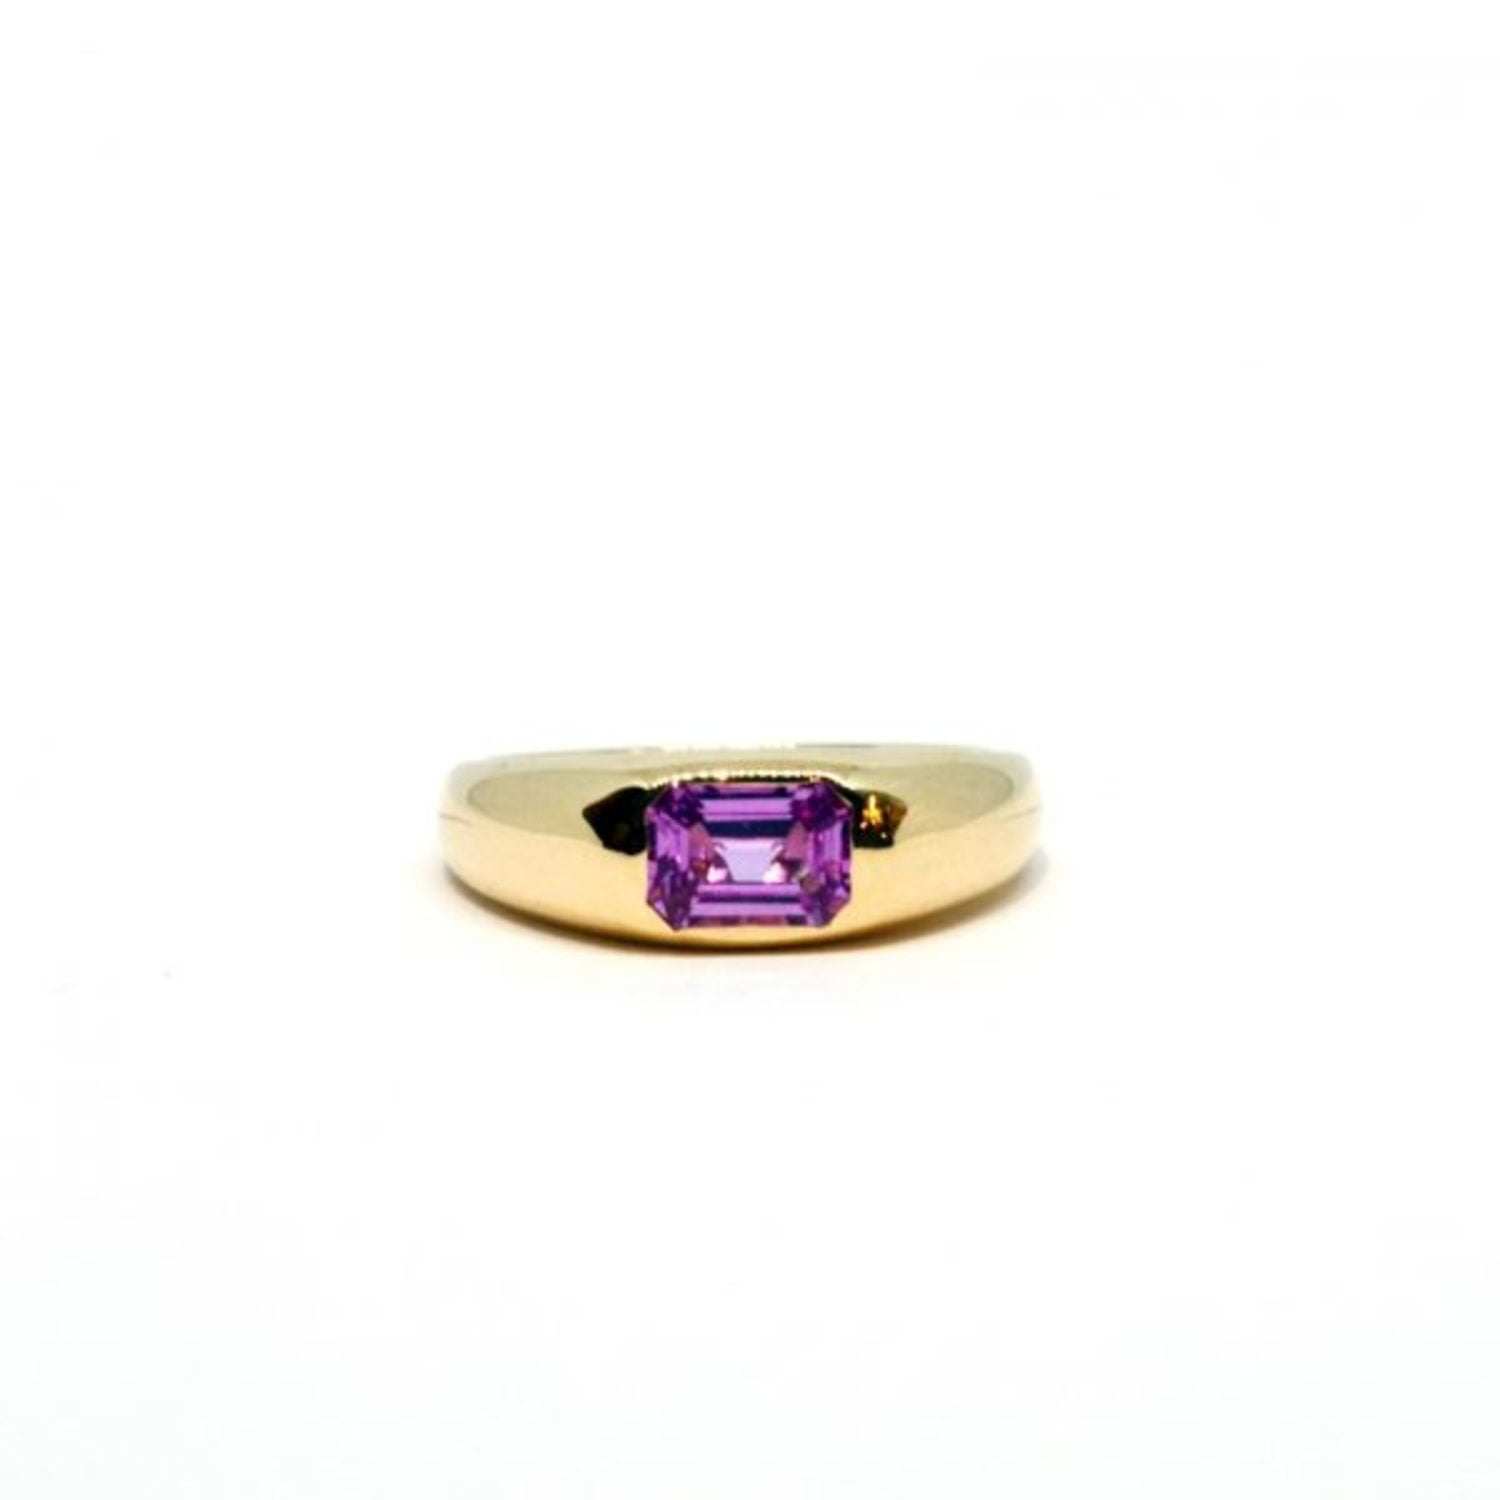 Emerald Cut Pink Sapphire Dome Ring In 14K Yellow Gold